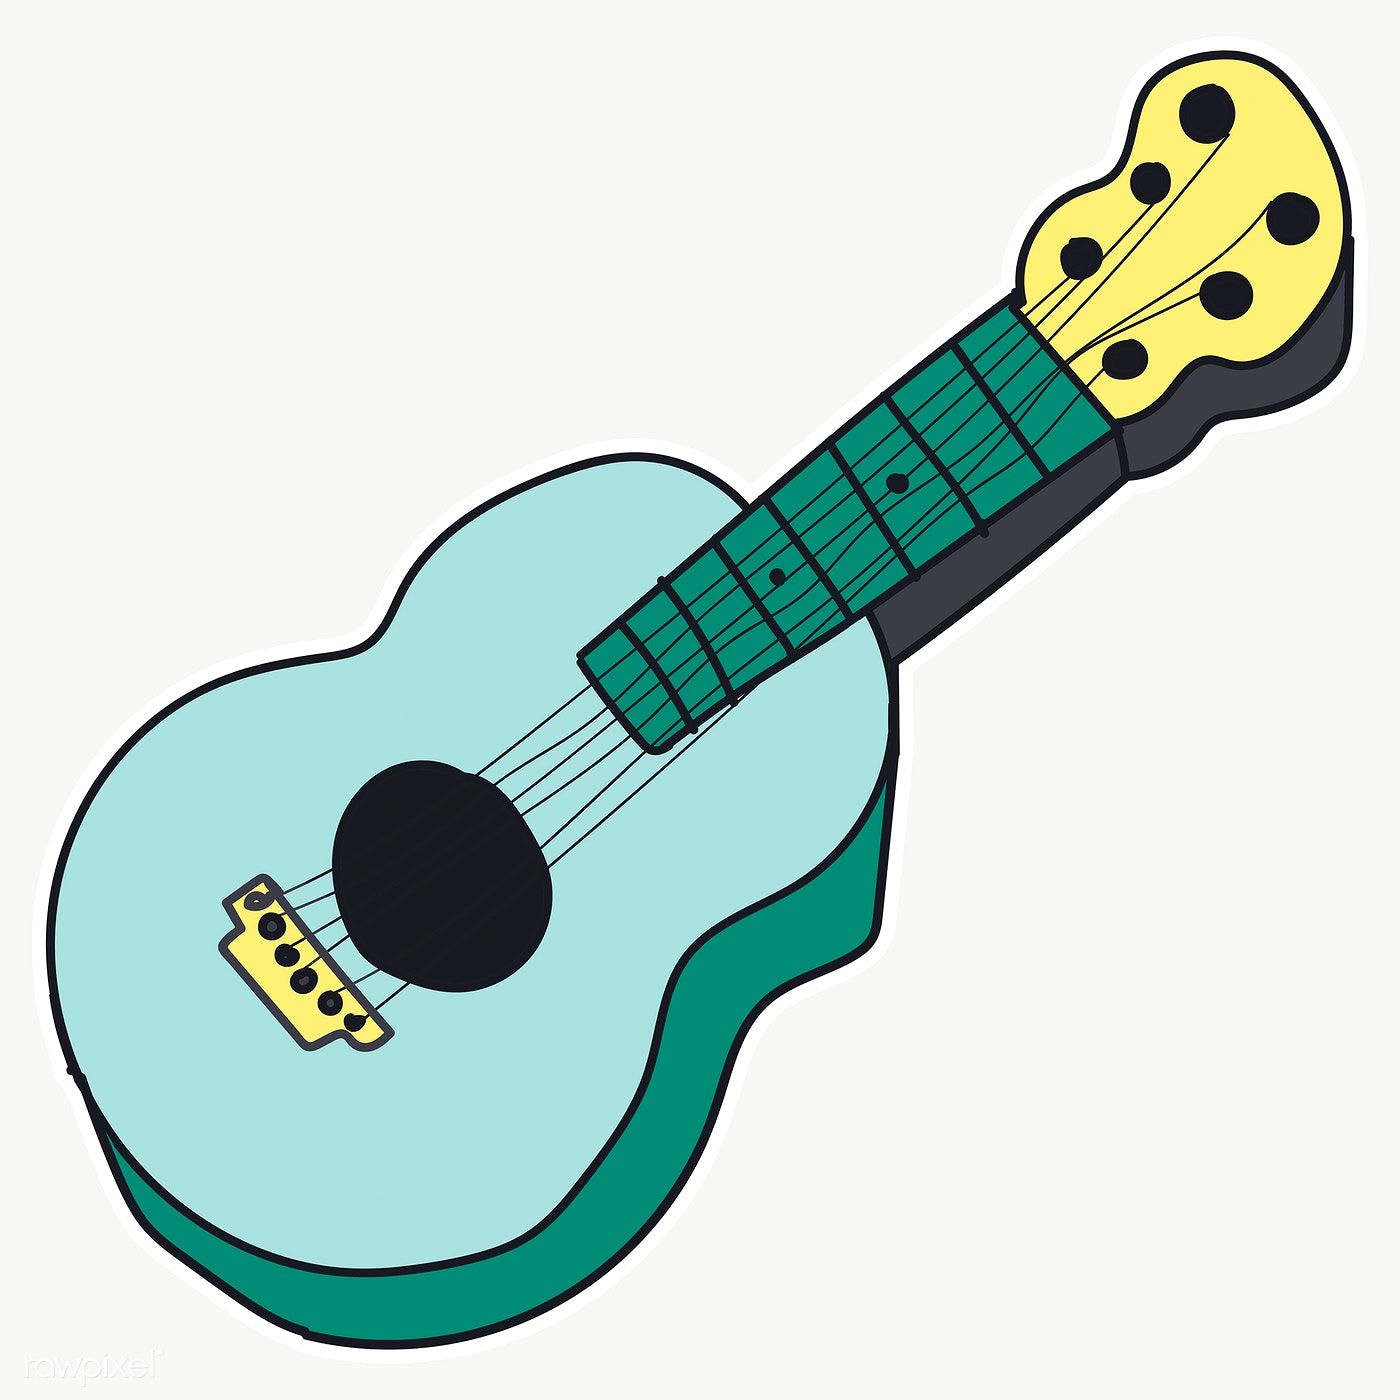 Download Premium Png Of Hand Drawn Cute Guitar Sticker Transparent Png In 2020 Guitar Stickers Transparent Stickers How To Draw Hands